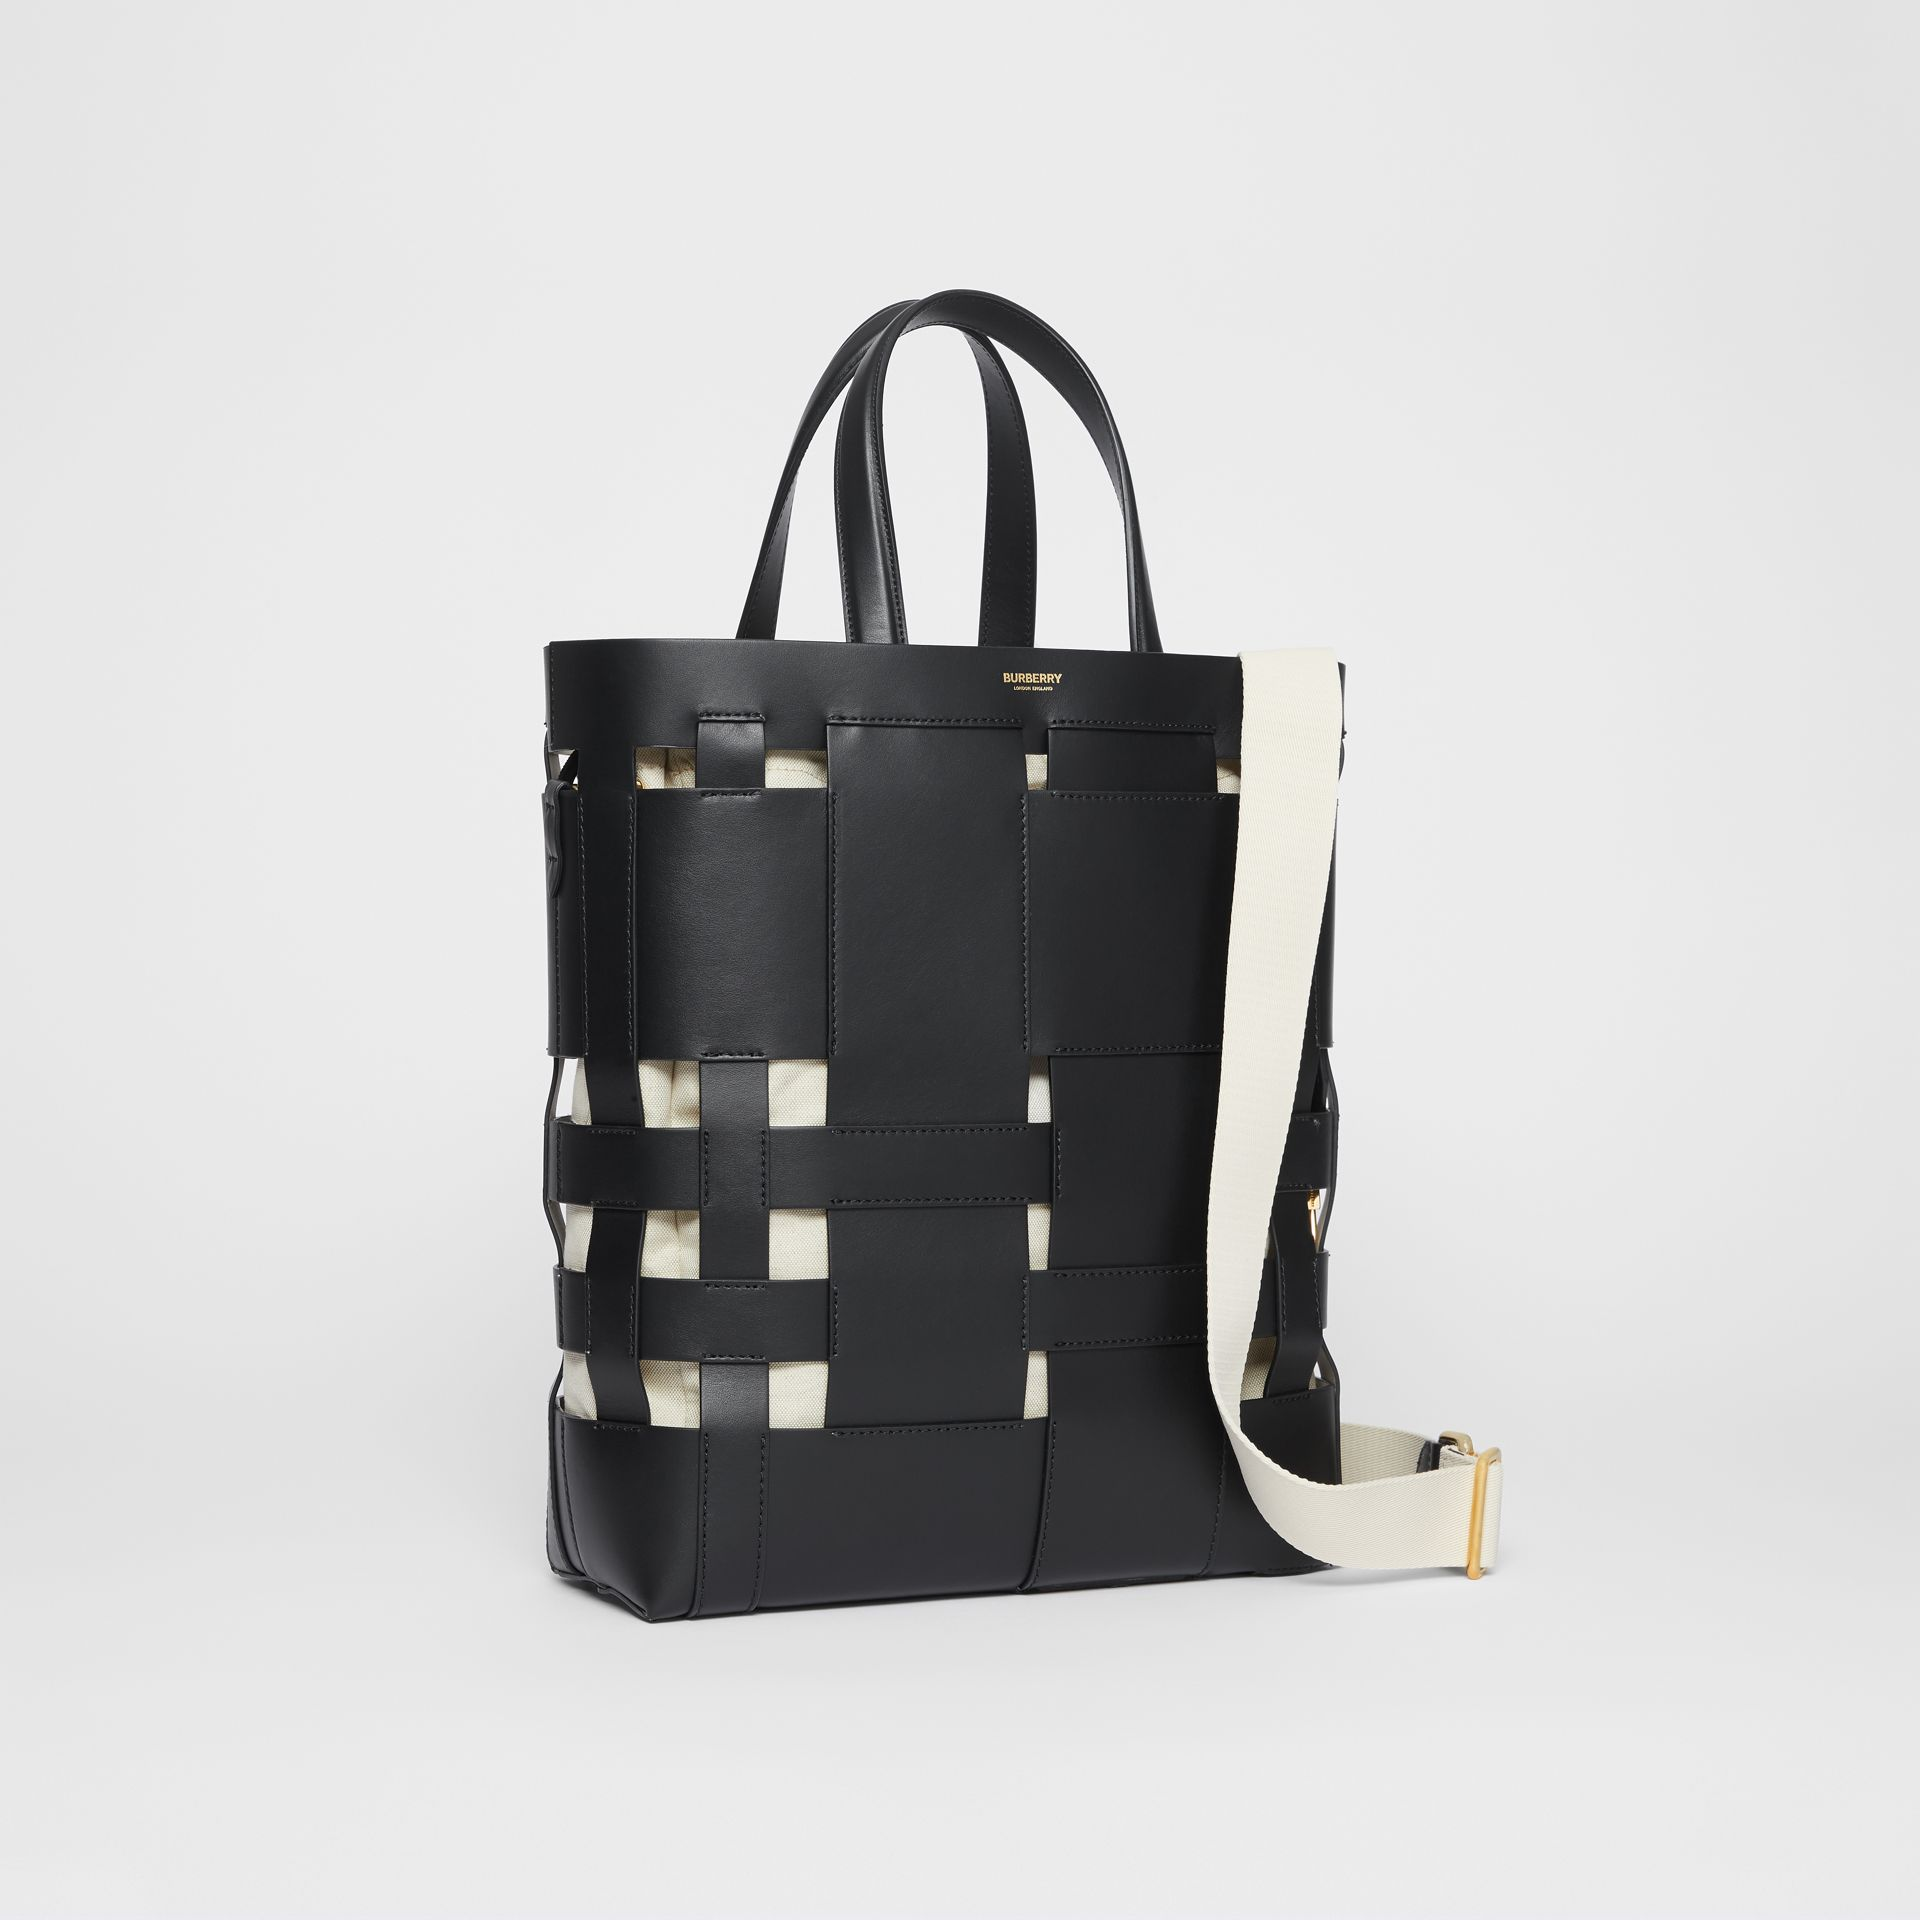 Medium Leather Foster Tote in Black - Women | Burberry - gallery image 4